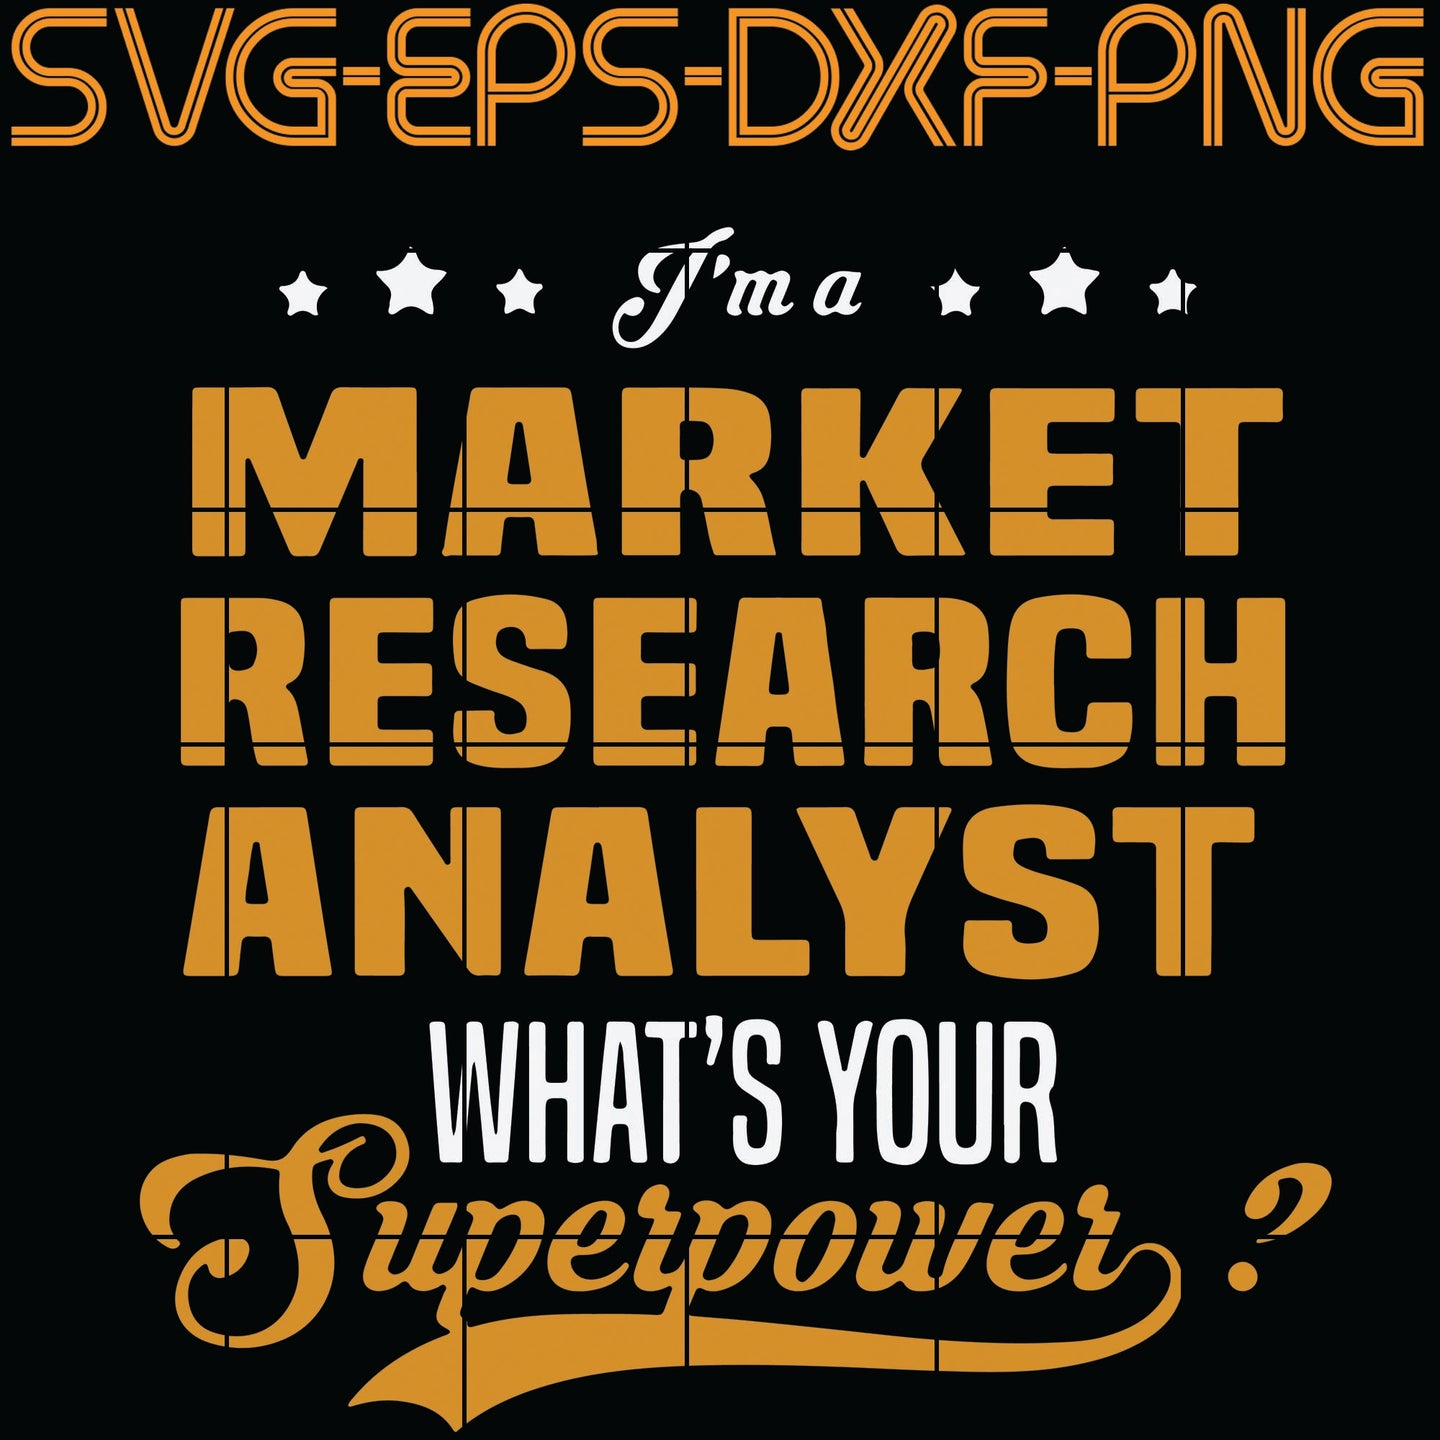 I m A Market Research Analyst What's Your Superpower, Quotes, PNG, EPS, DXF, Digital Download